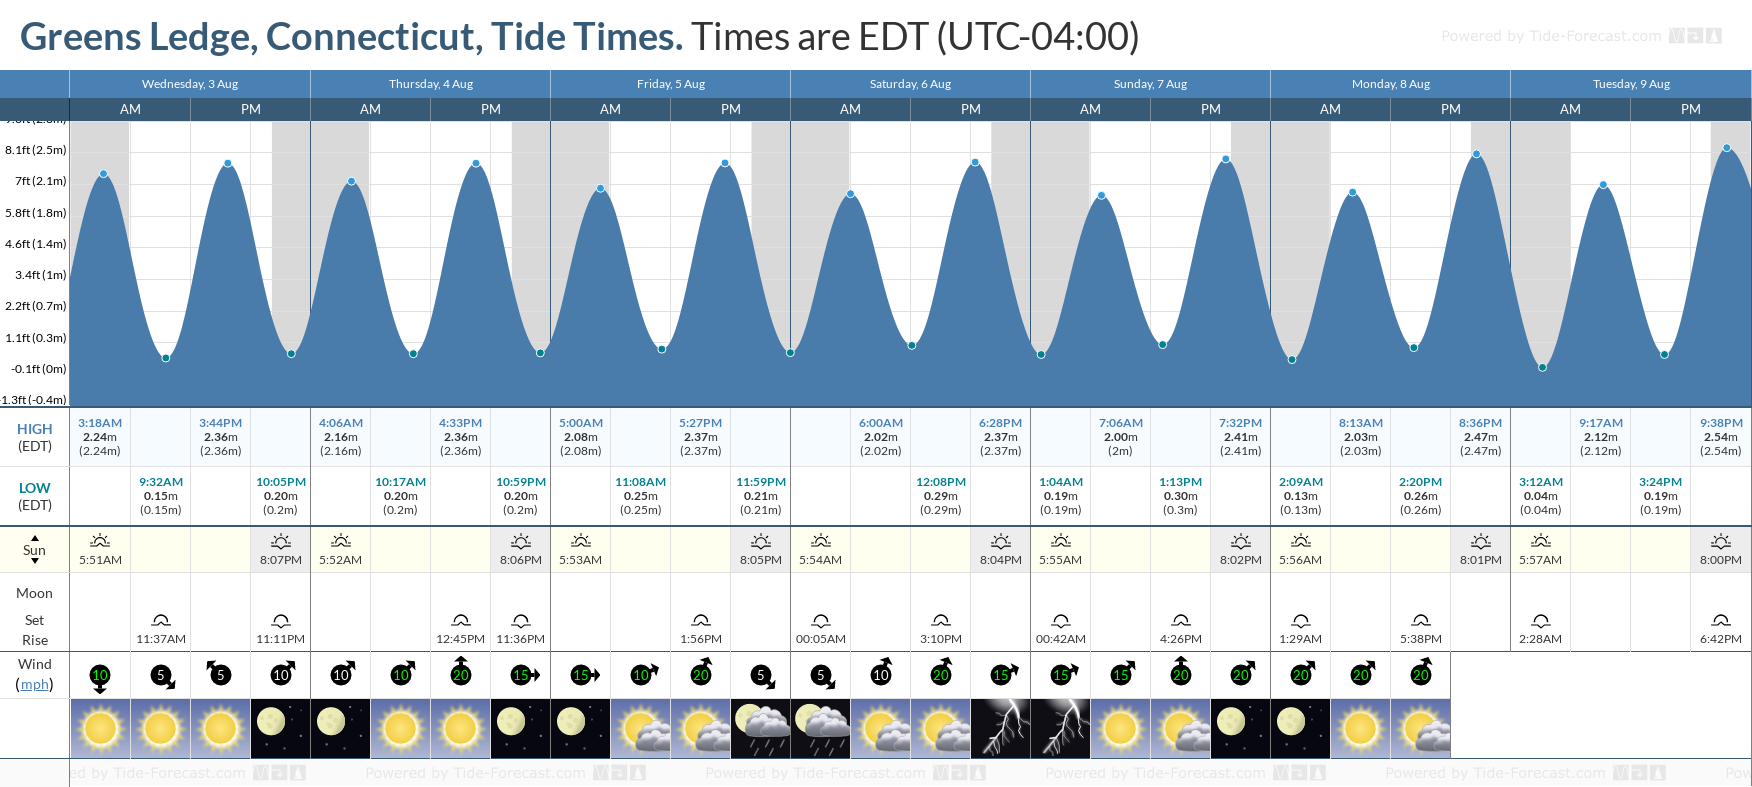 Greens Ledge, Connecticut Tide Chart including high and low tide tide times for the next 7 days